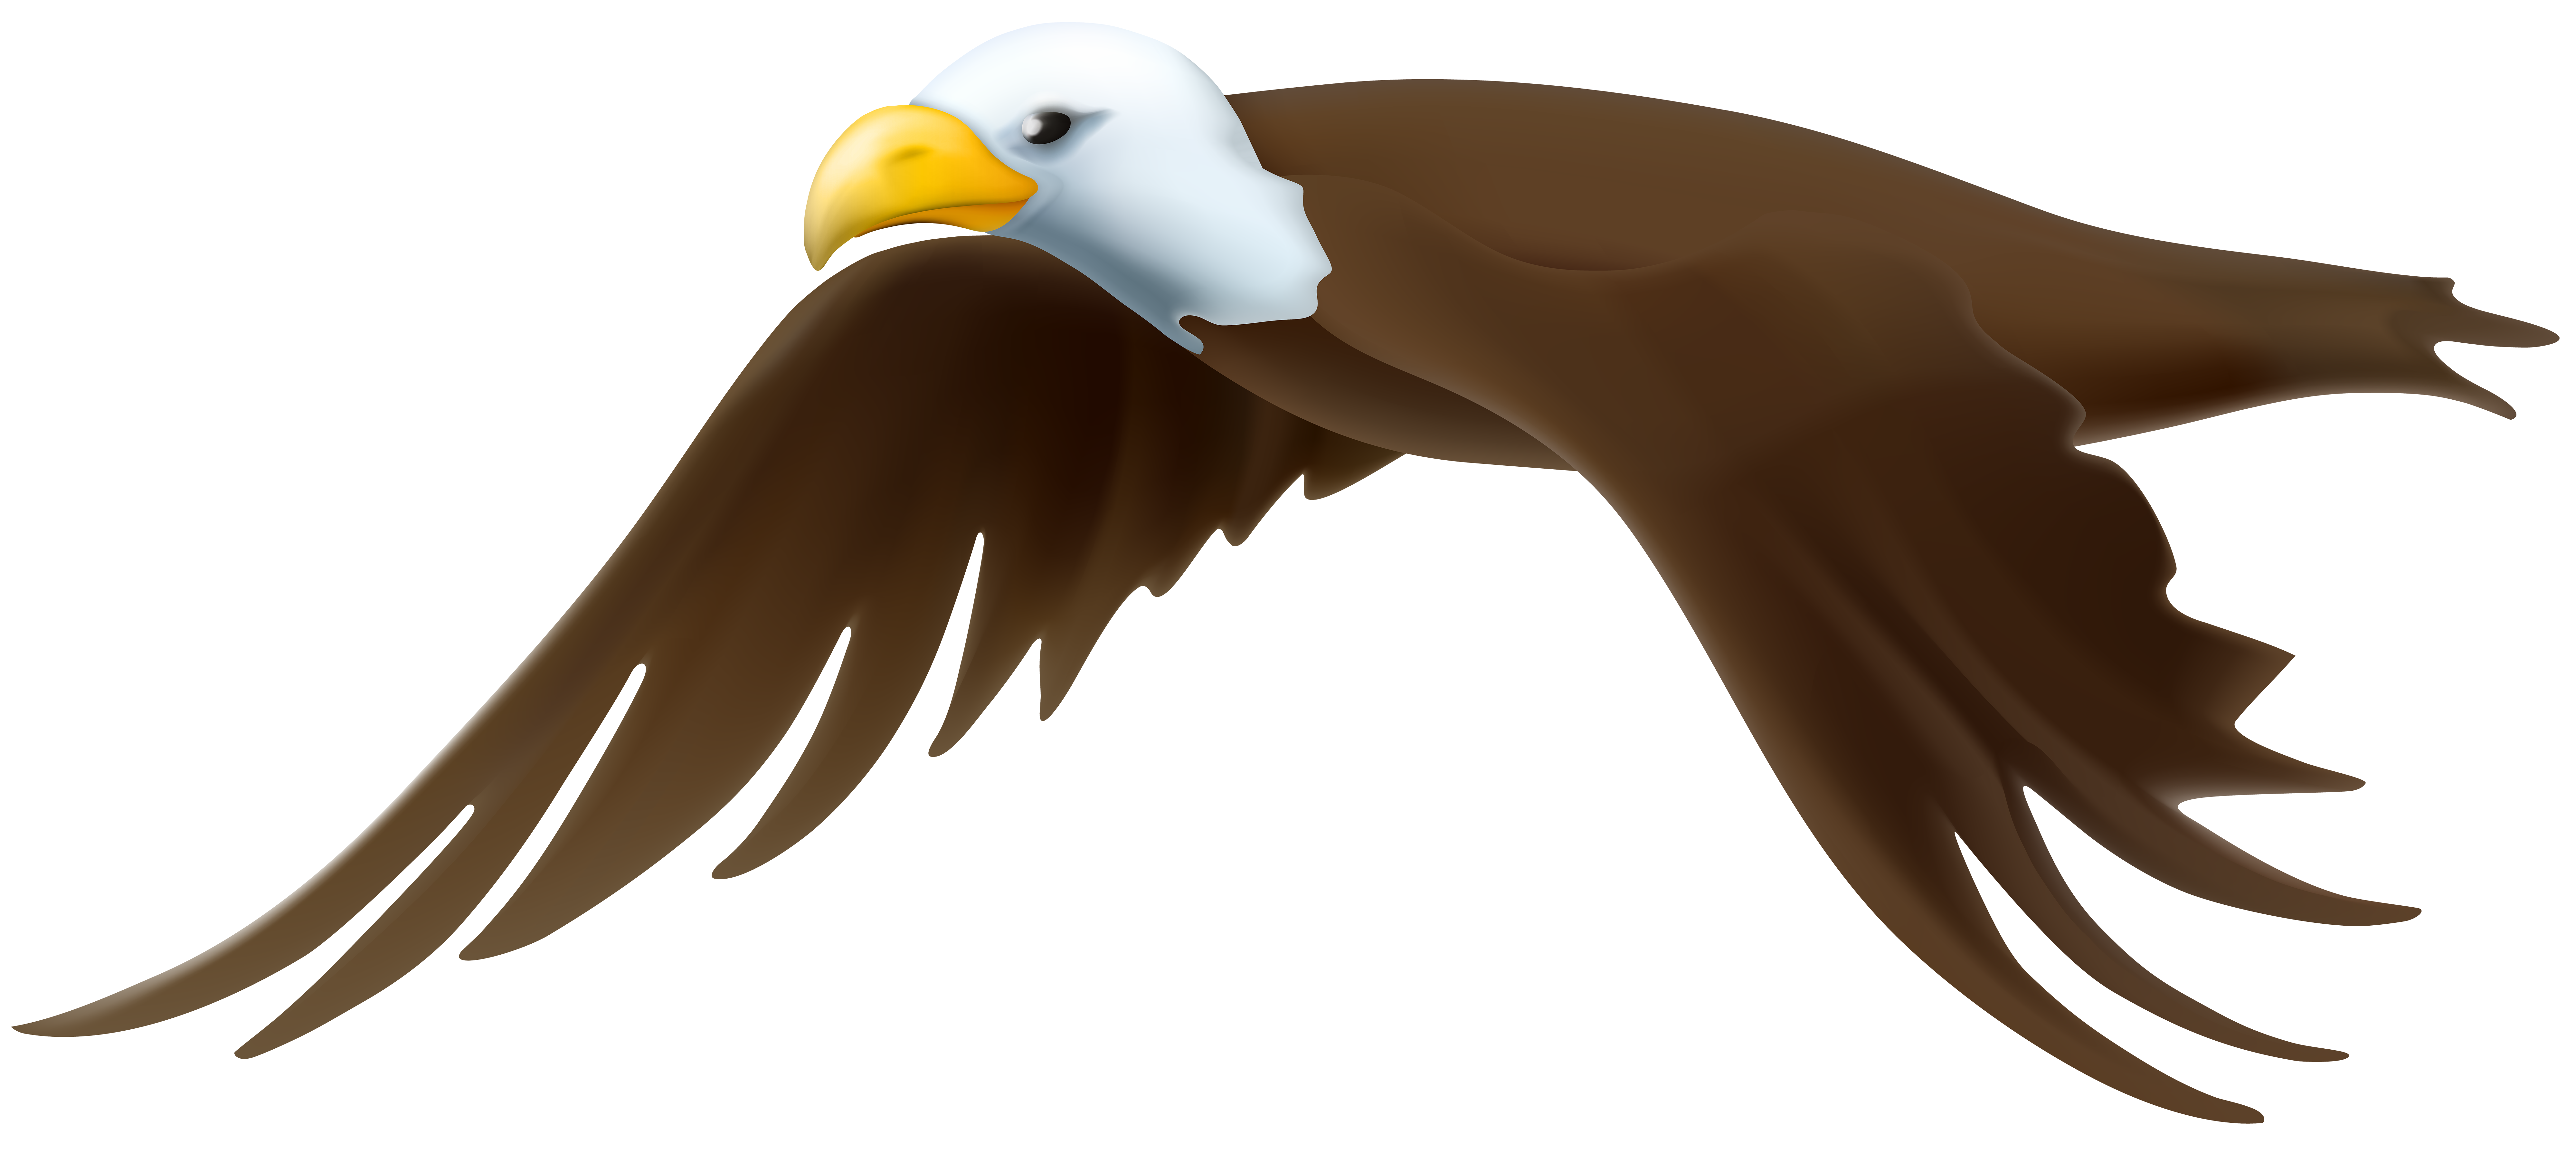 911 drawing eagle. Banners clip black